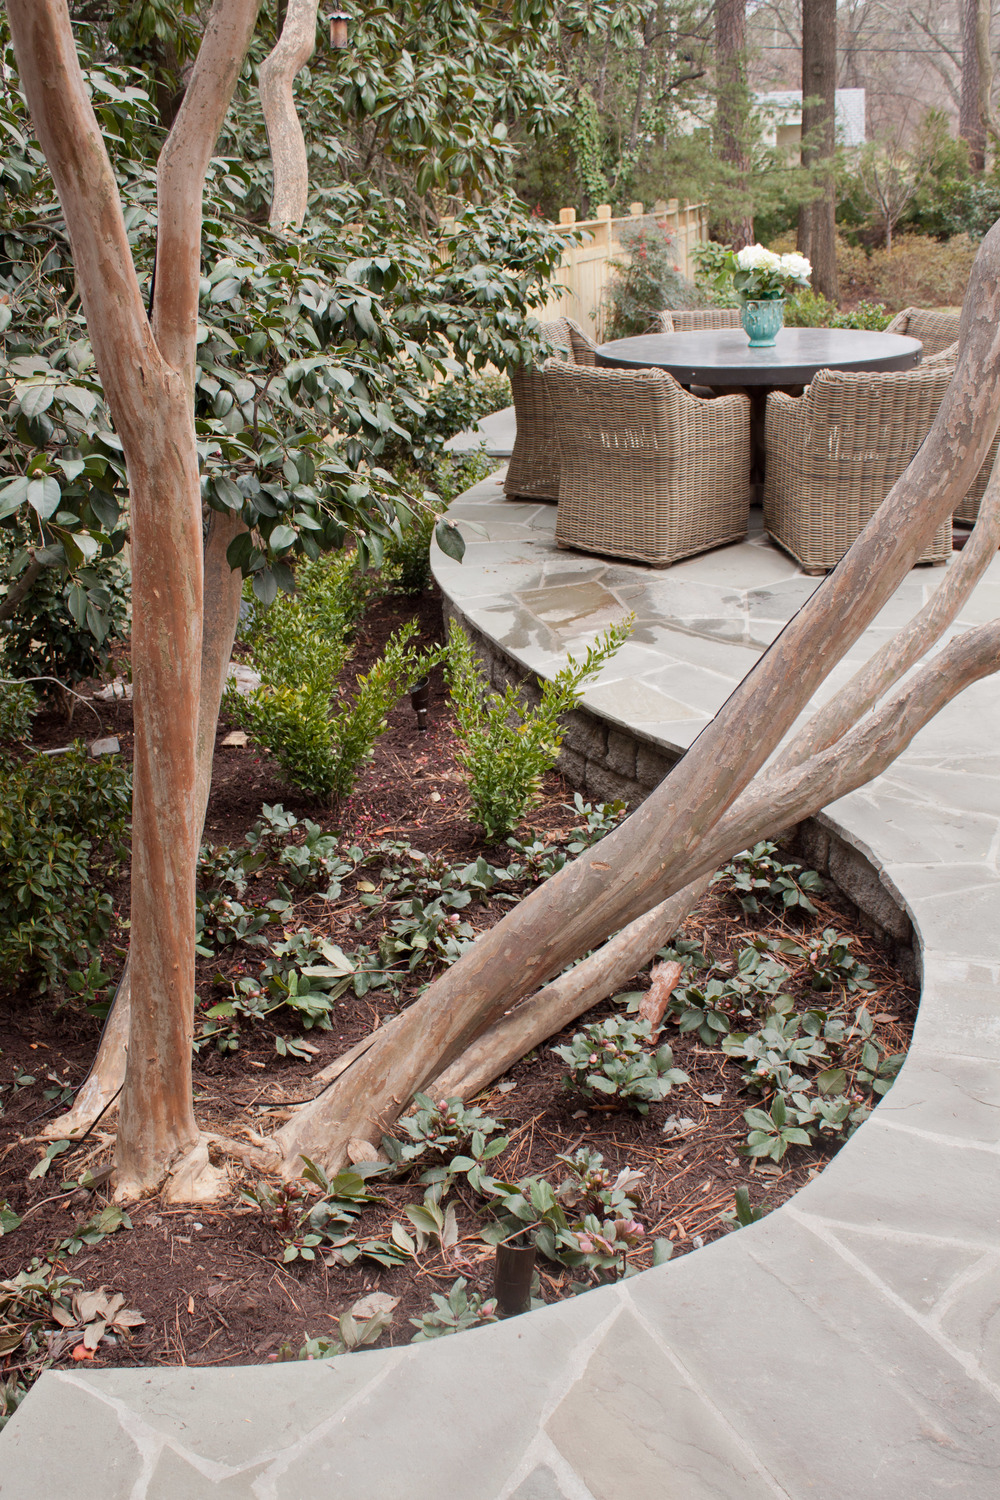 s landscape patio detail.jpg